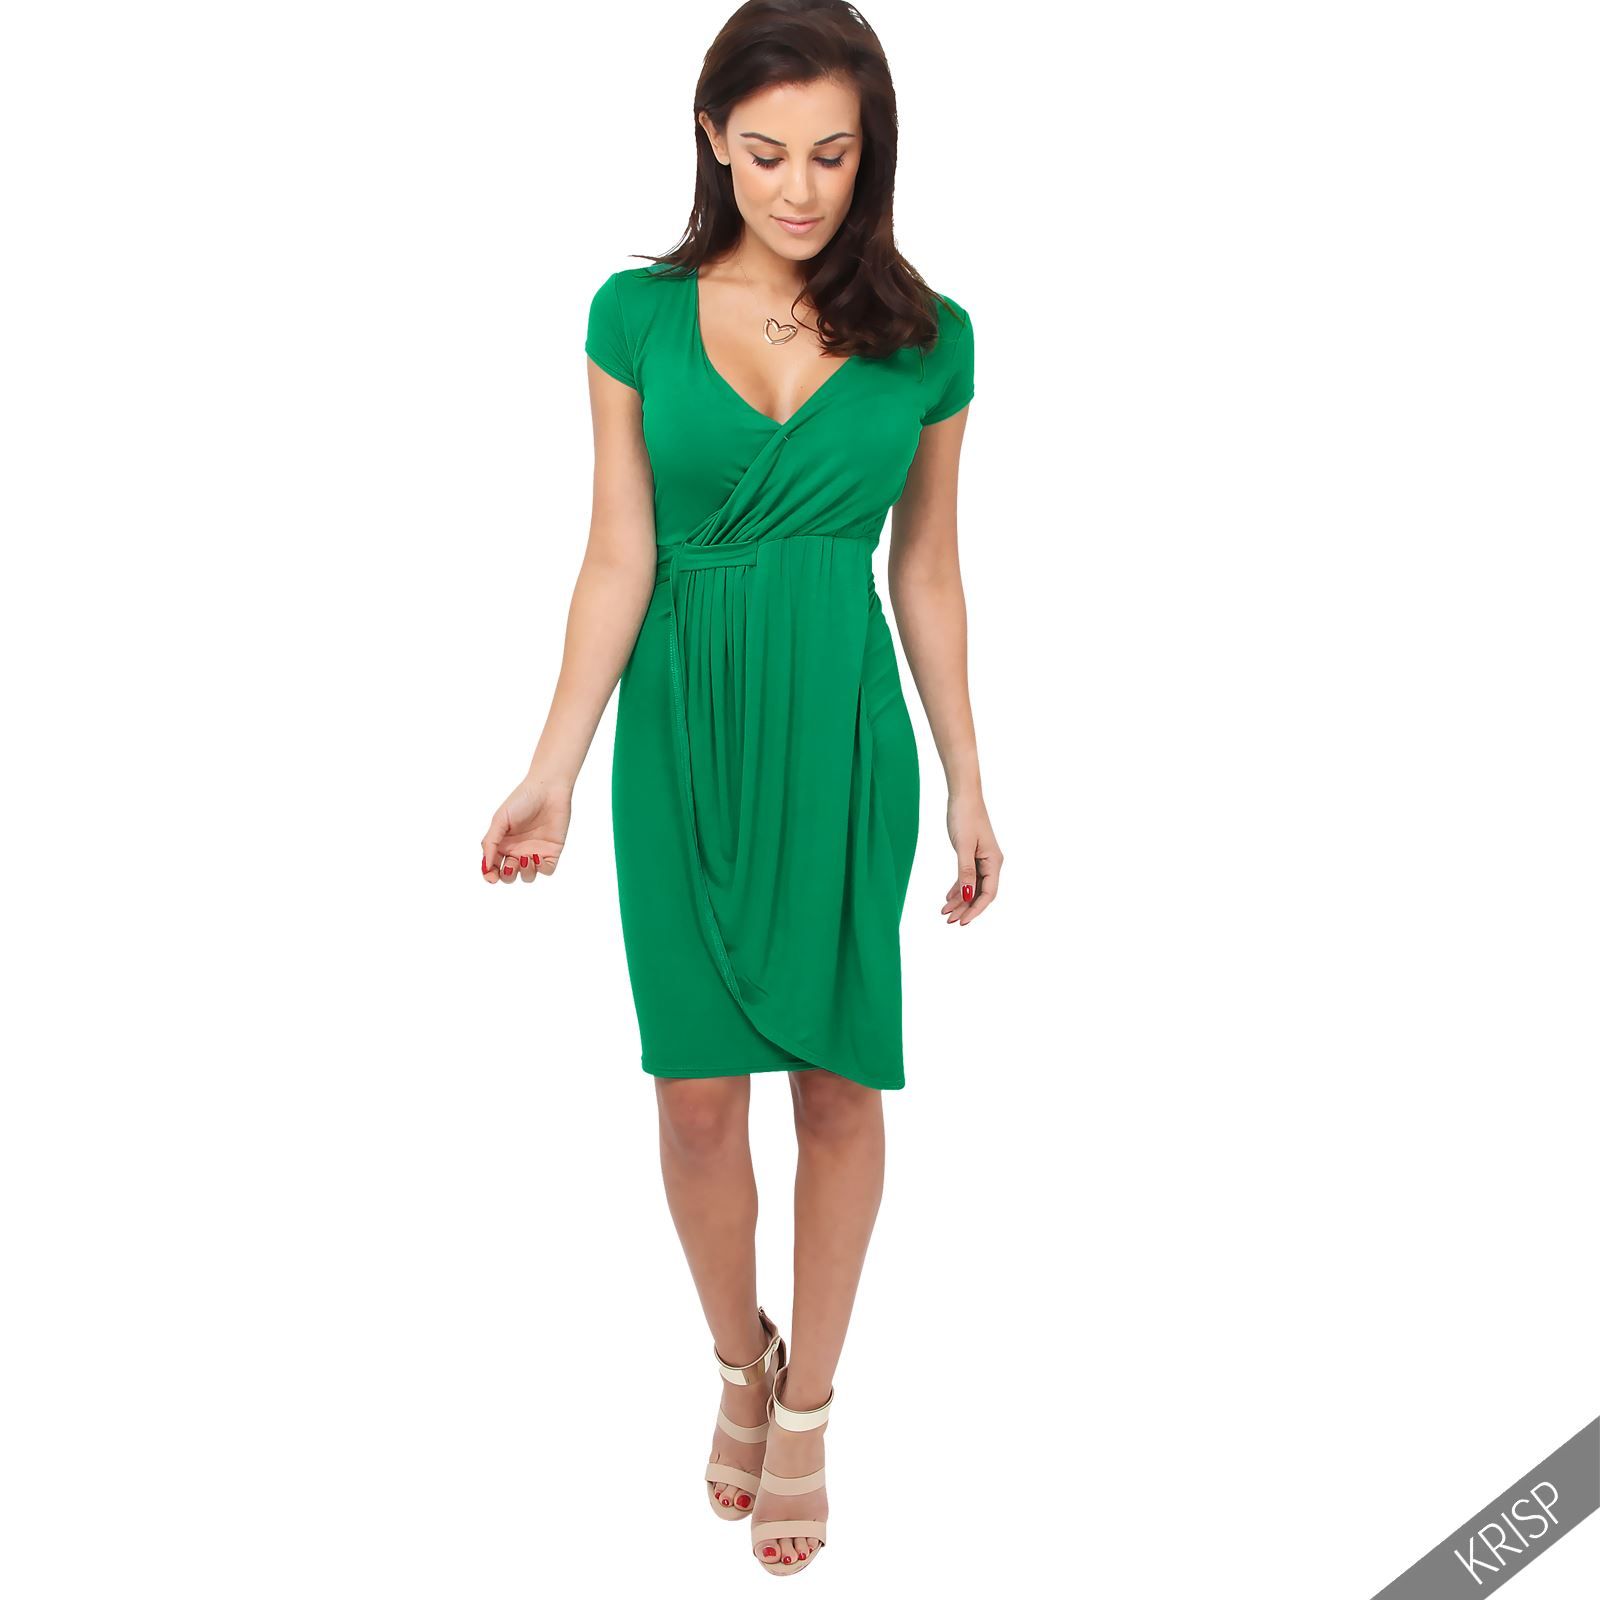 Womens-Ladies-V-Neck-Wrap-Midi-Dress-Front-Pleated-Skirt-Top-Cap-Sleeve-Party thumbnail 9